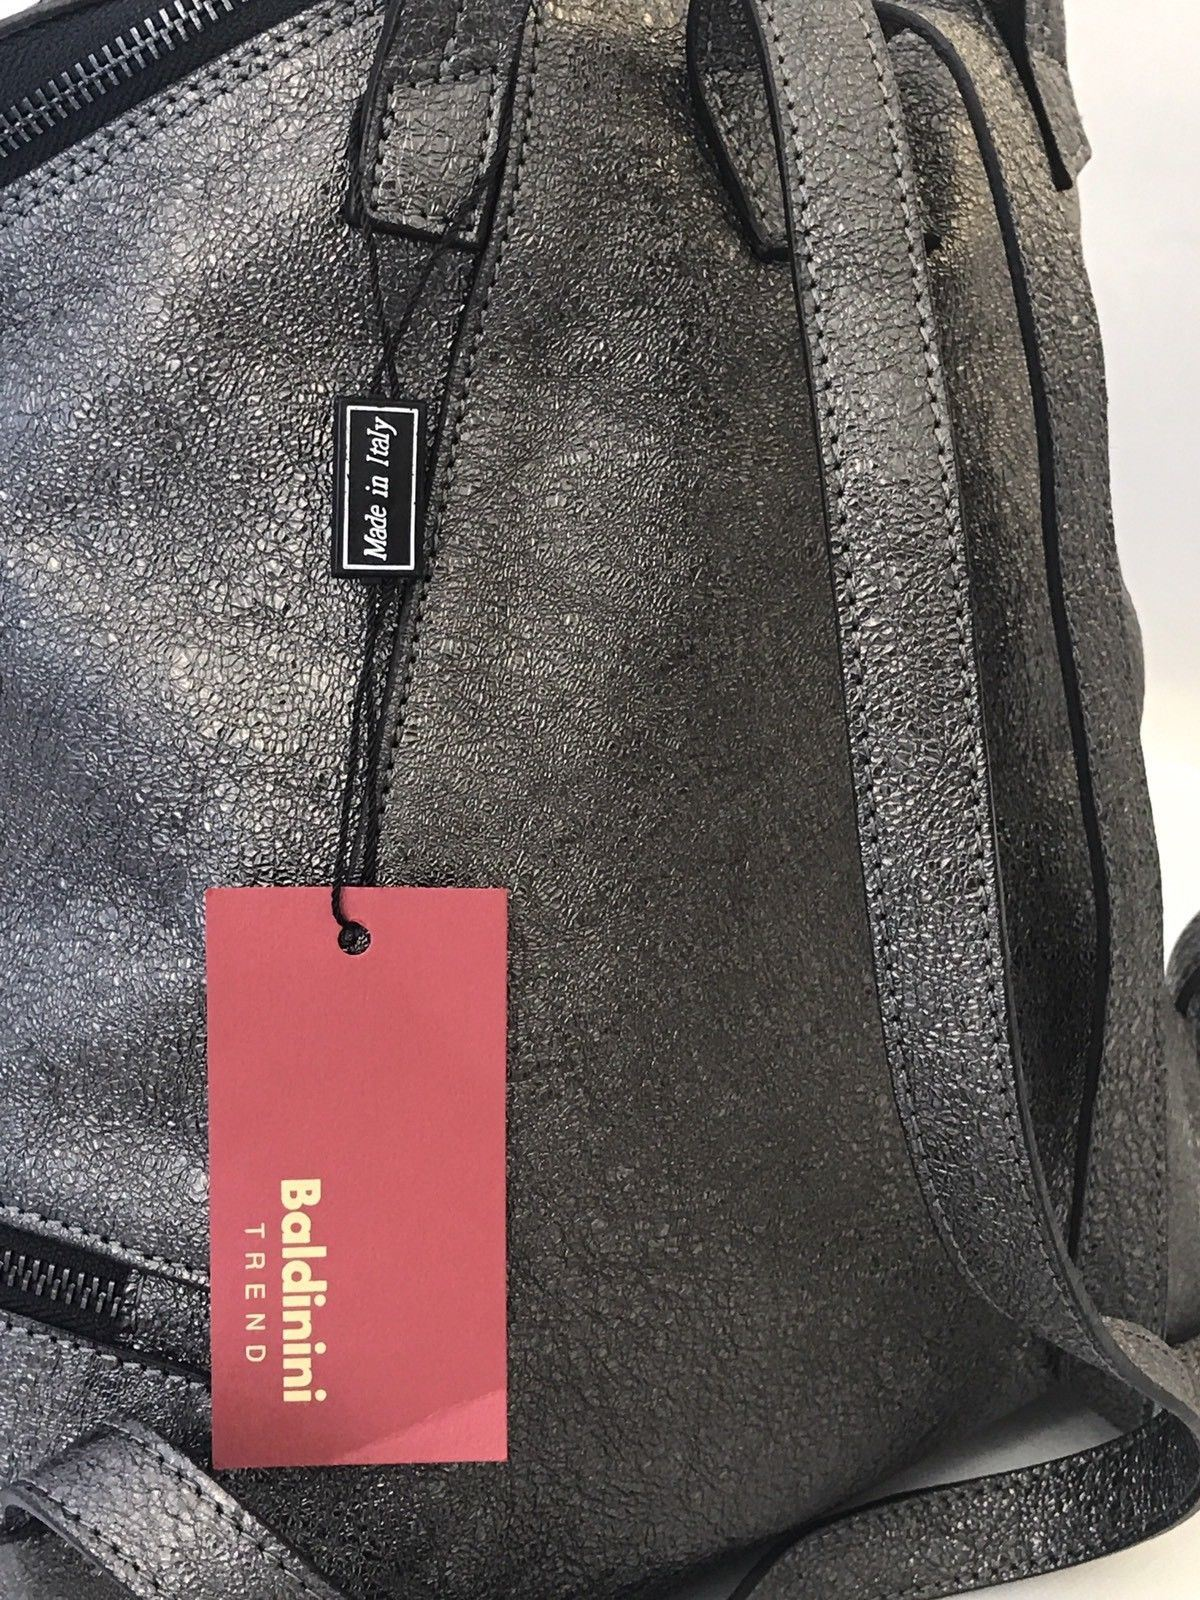 NWT $489 Baldinini Trend Dark Gray Shiny Leather Backpack Made In Italy - BAYSUPERSTORE